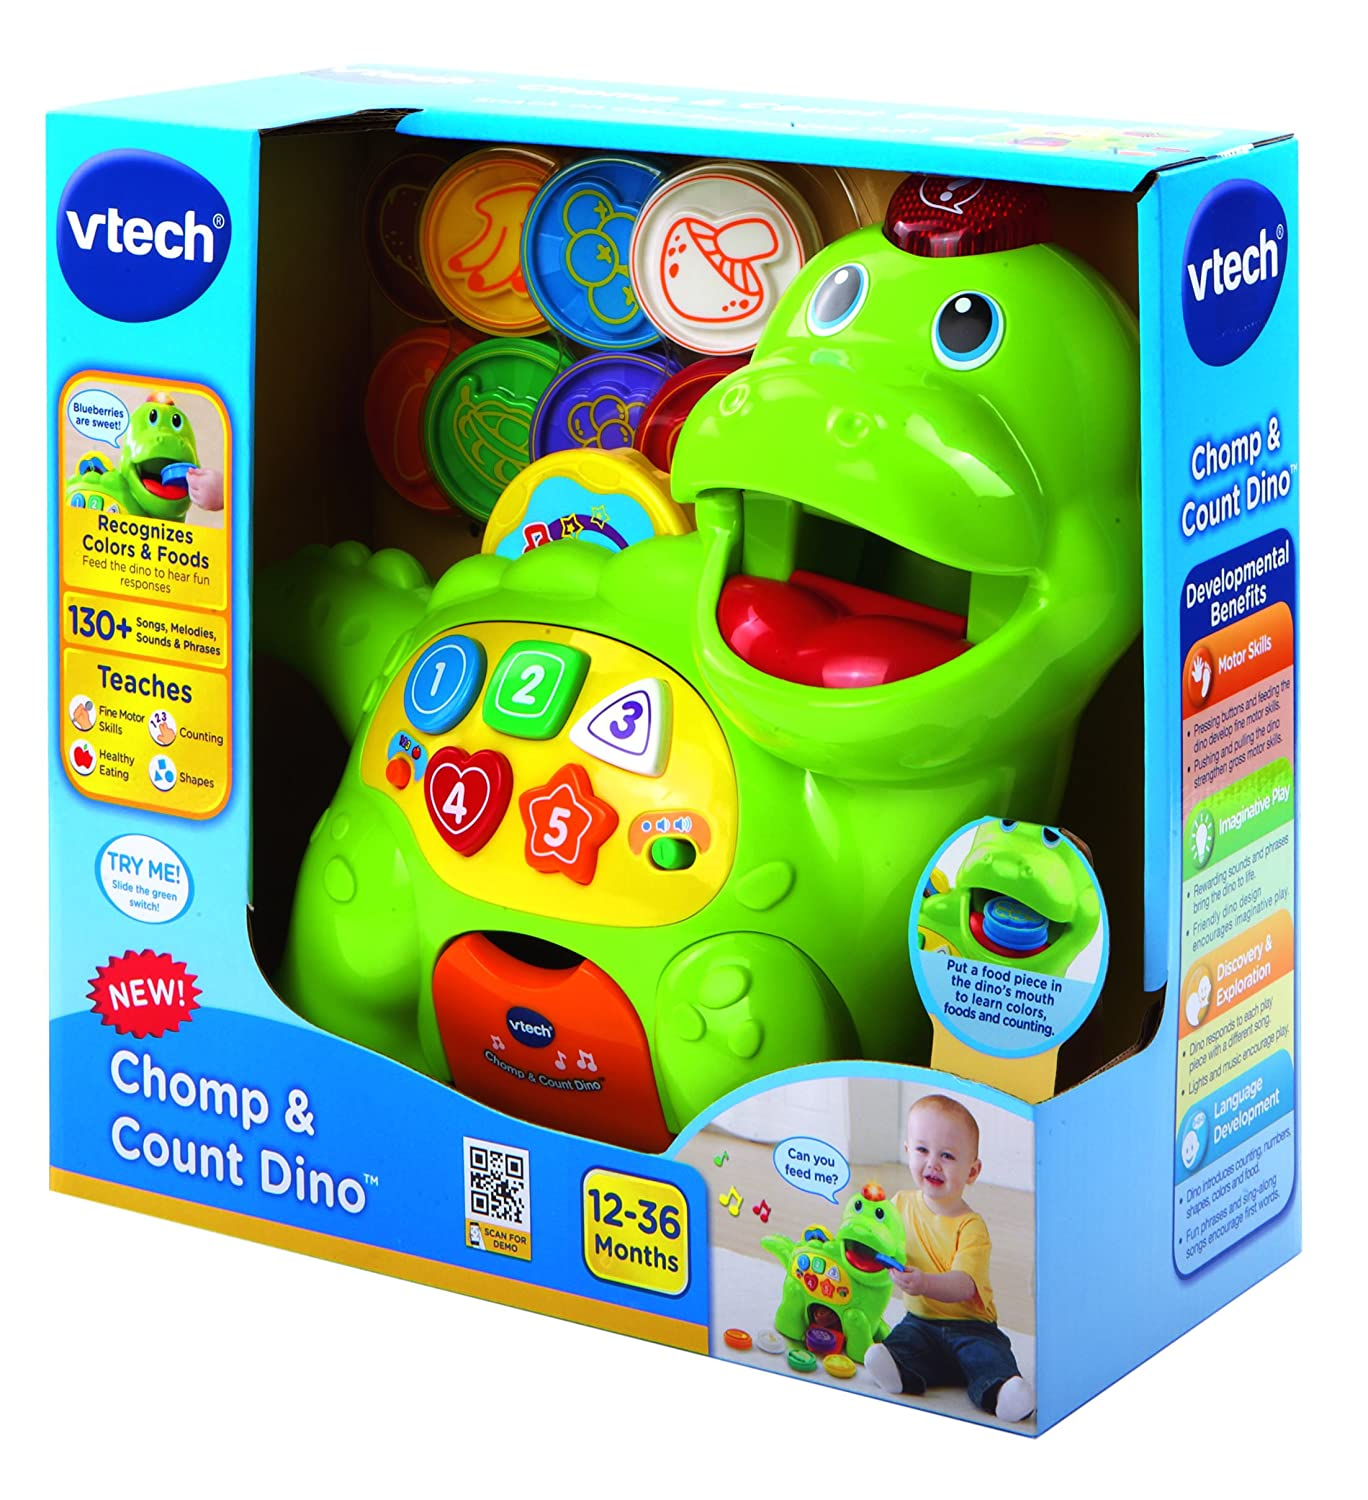 VTech Baby Feed Me Dino Toy Green VTech Baby Amazon